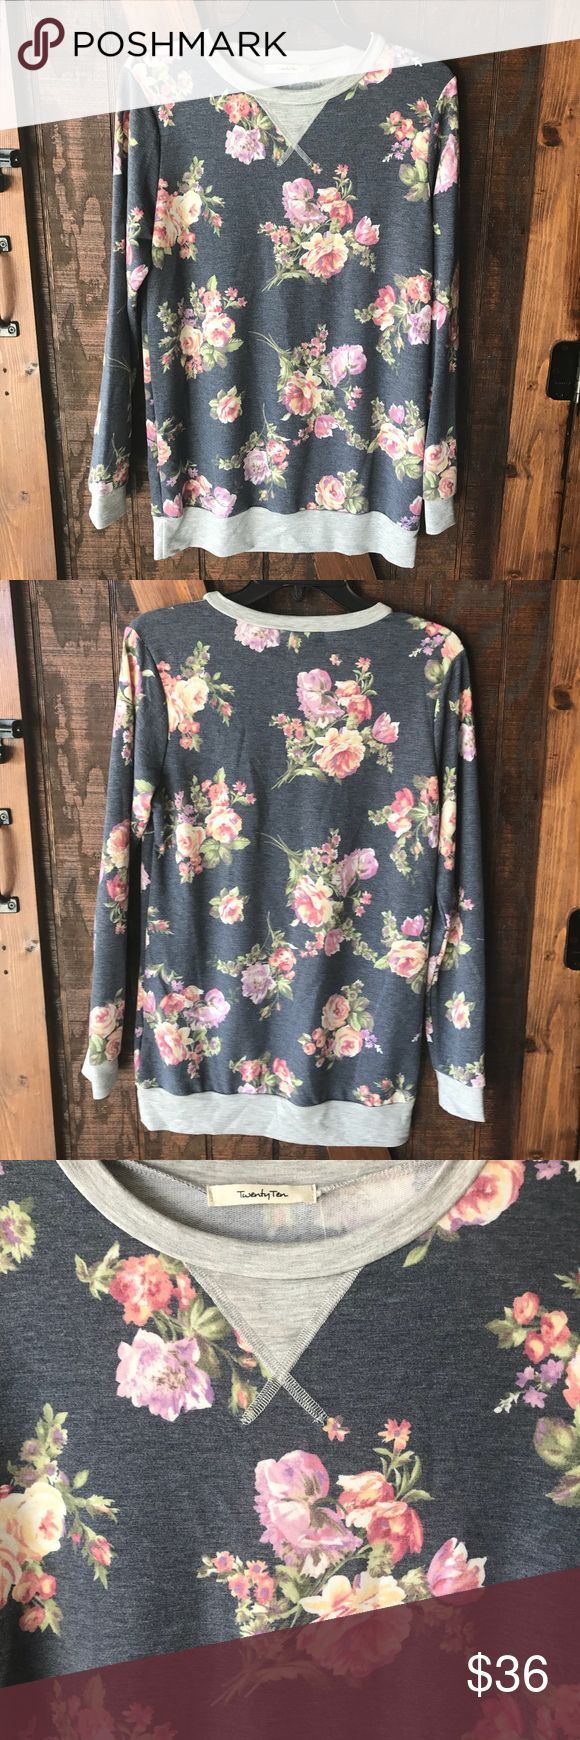 New Woman's French Terry Pullover Floral This is beautiful Woman's French Terry Floral Pullover. Brand new. Lightweight. 62% Polyester, 33% Rayon, 5% Spandex. So soft and warm. Looks adorable with jeans and boots. Small and large available. The Chic Petunia Tops Tees - Long Sleeve